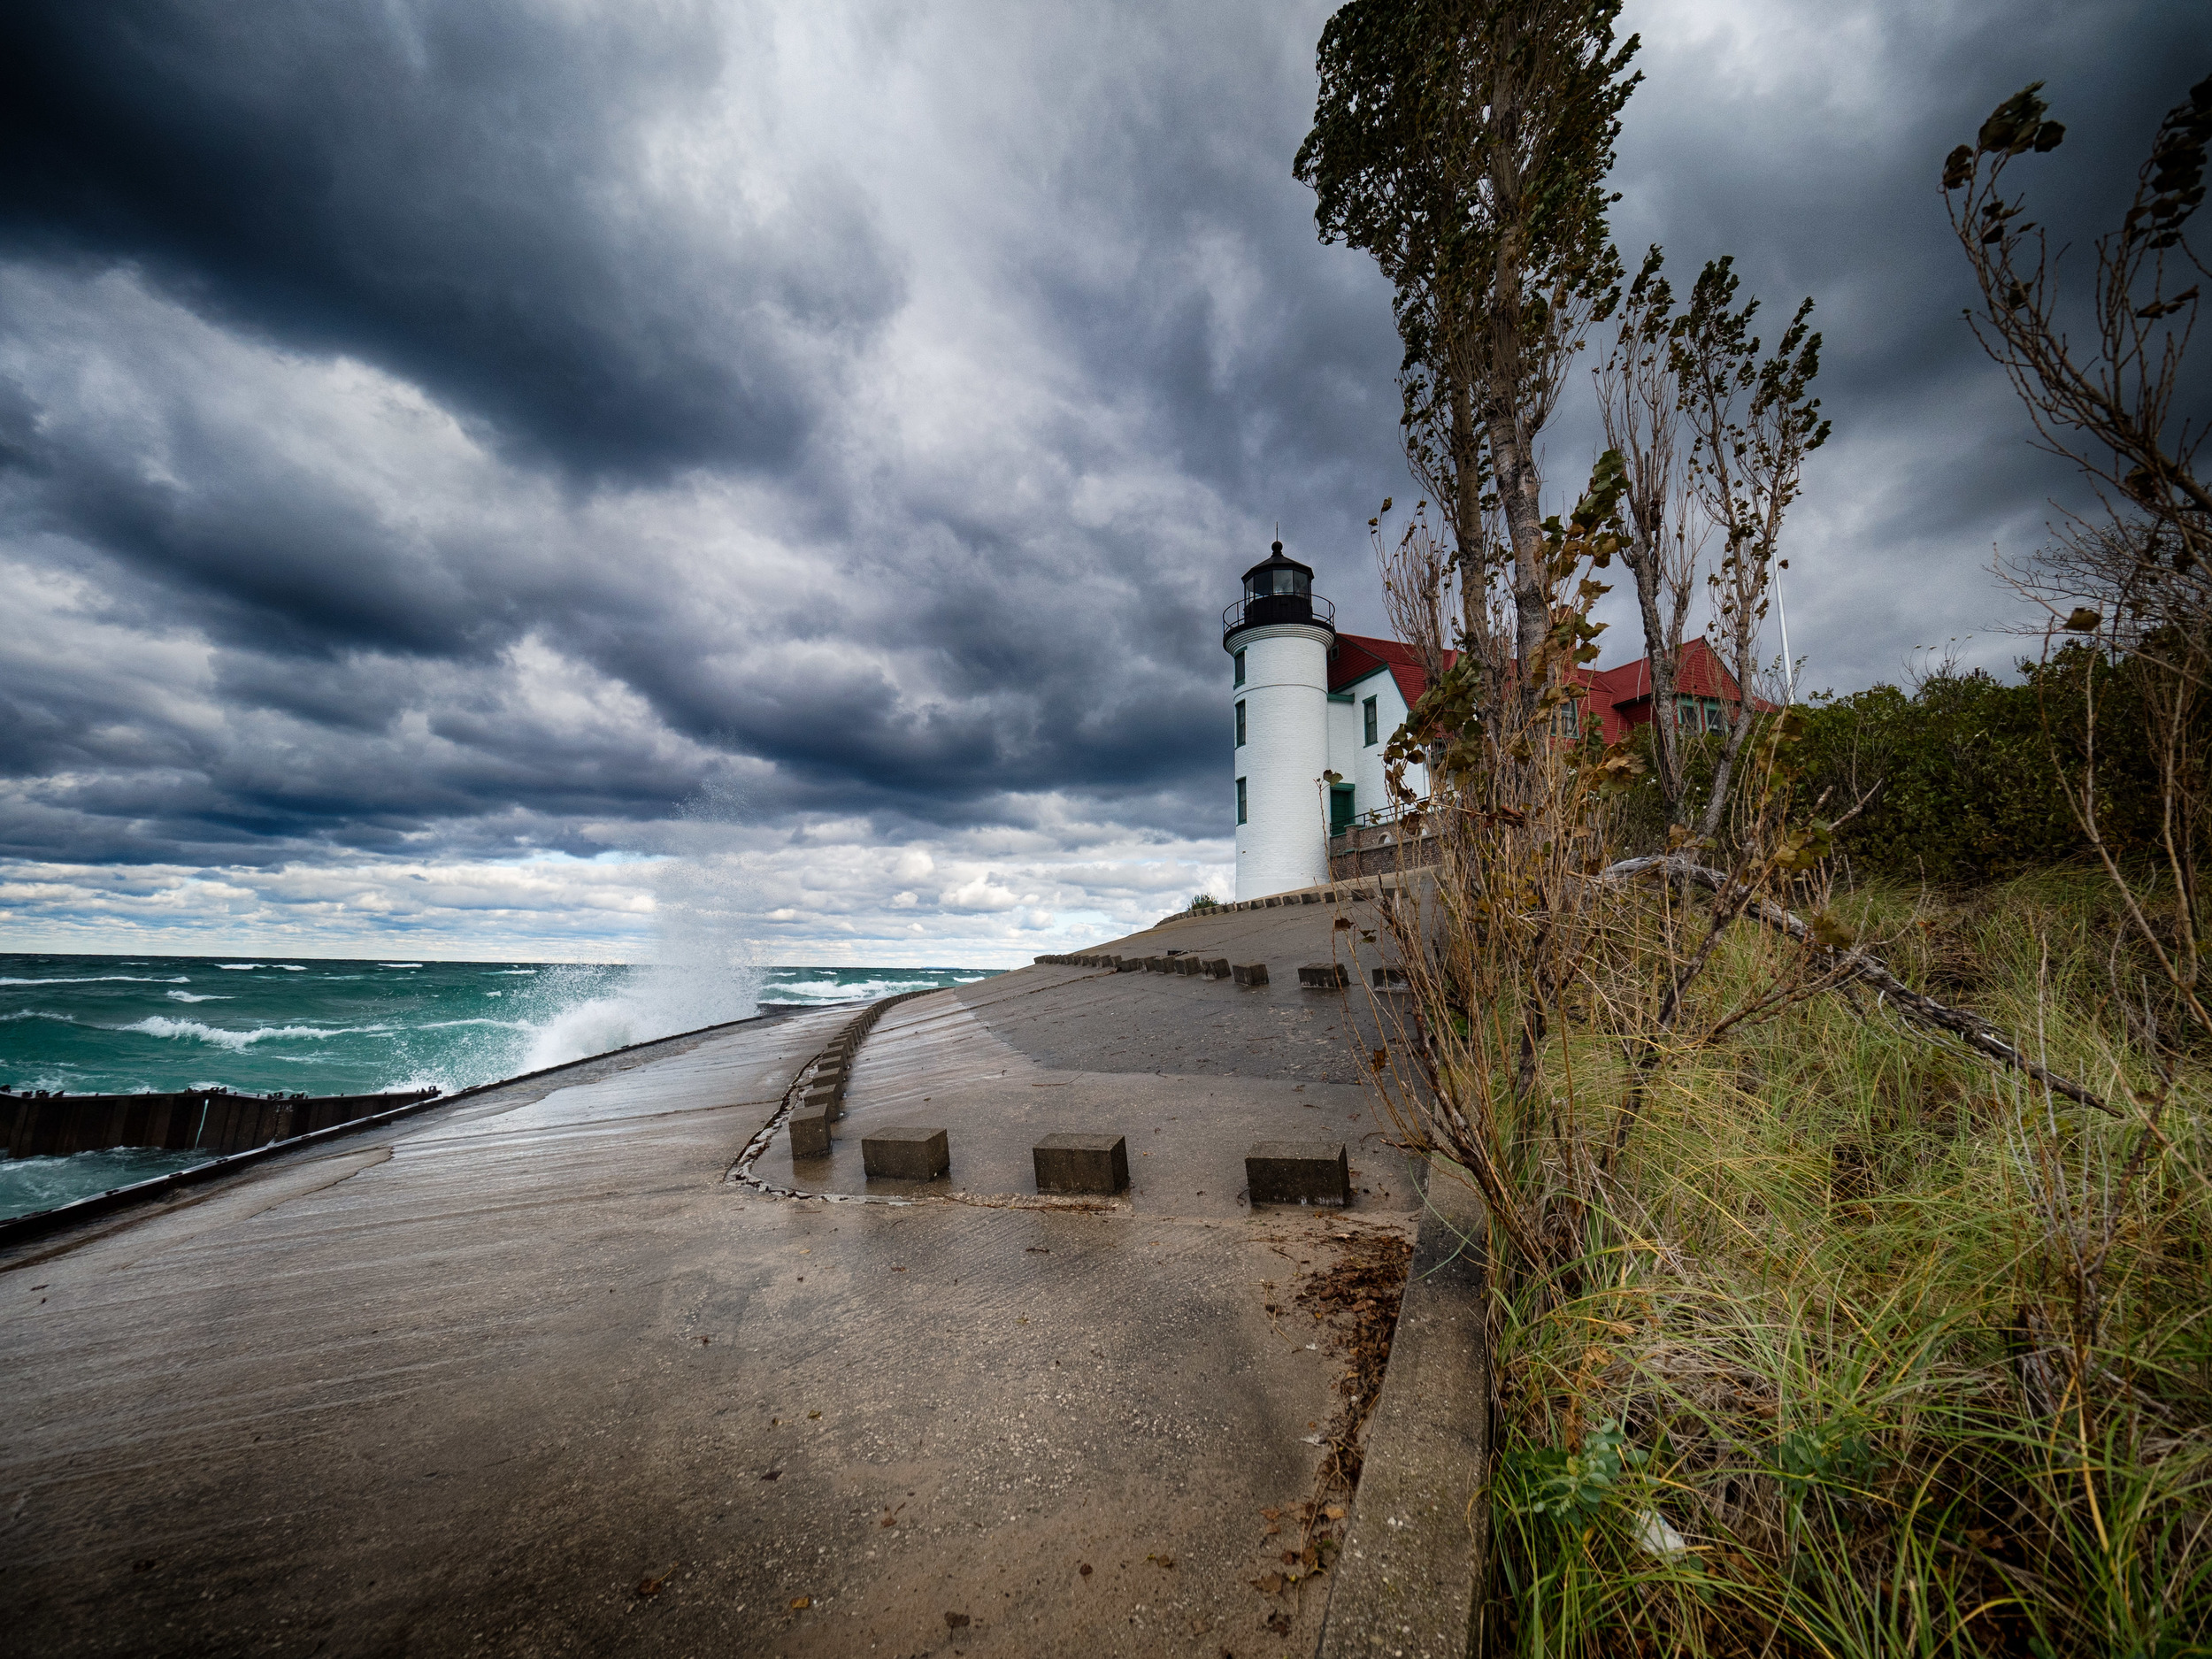 Point Betsey Lighthouse being blasted by a turbulent Lake Michigan. It was cold, and blustery, but it was worth every second to be there.